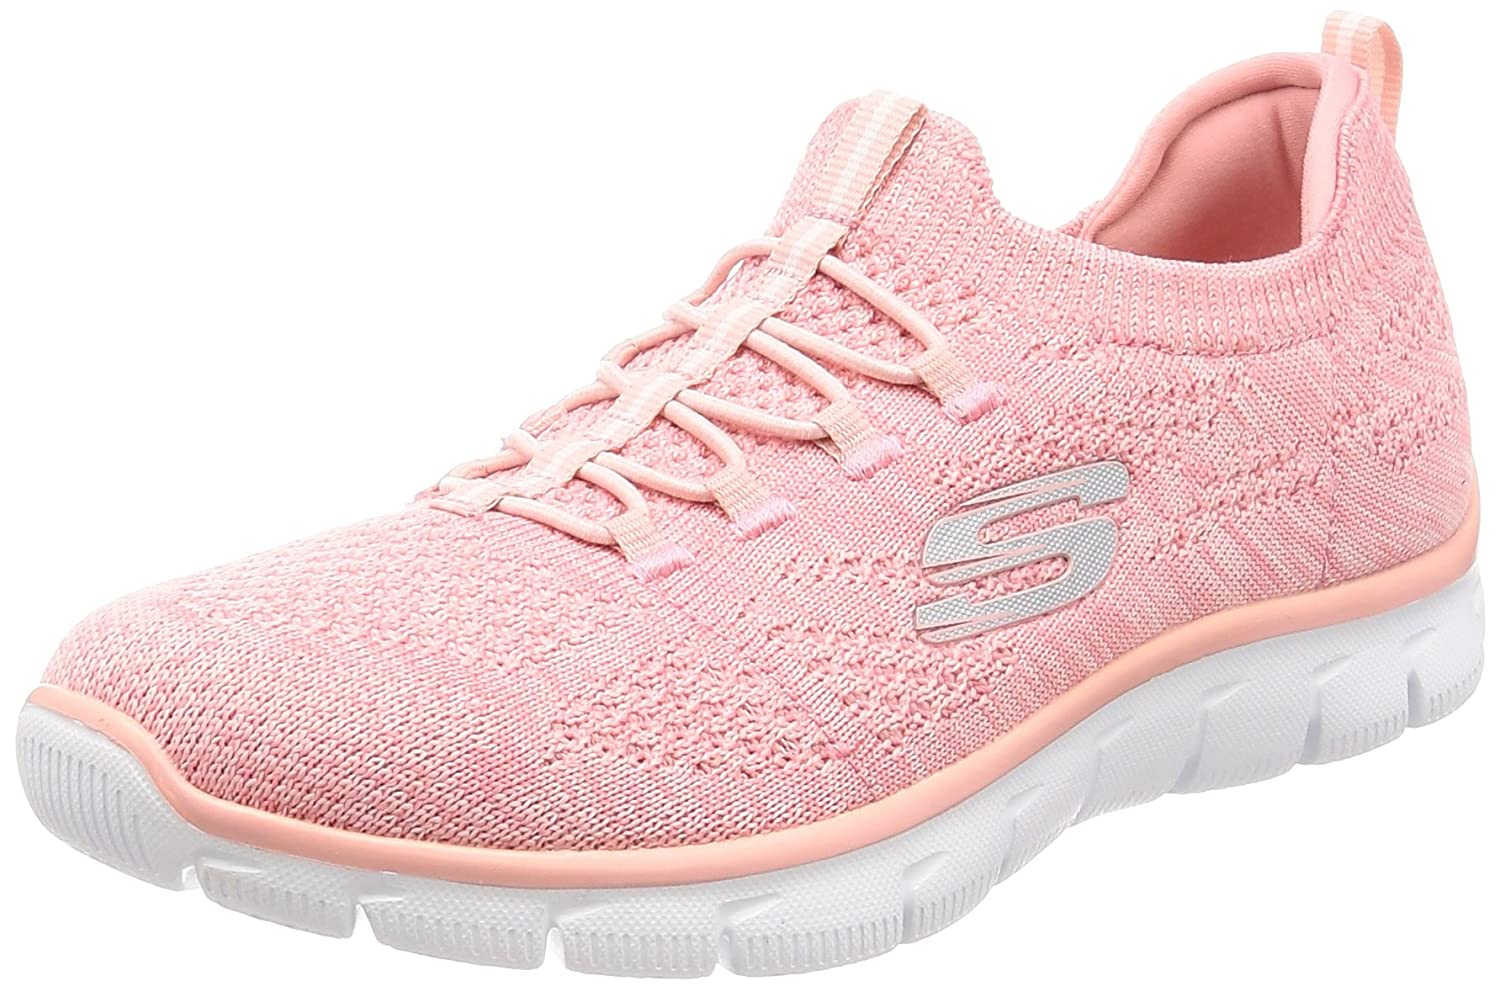 Skechers Sport Women's Empire Sharp Thinking Fashion Sneaker B071GRQ11S 6 B(M) US|Pink